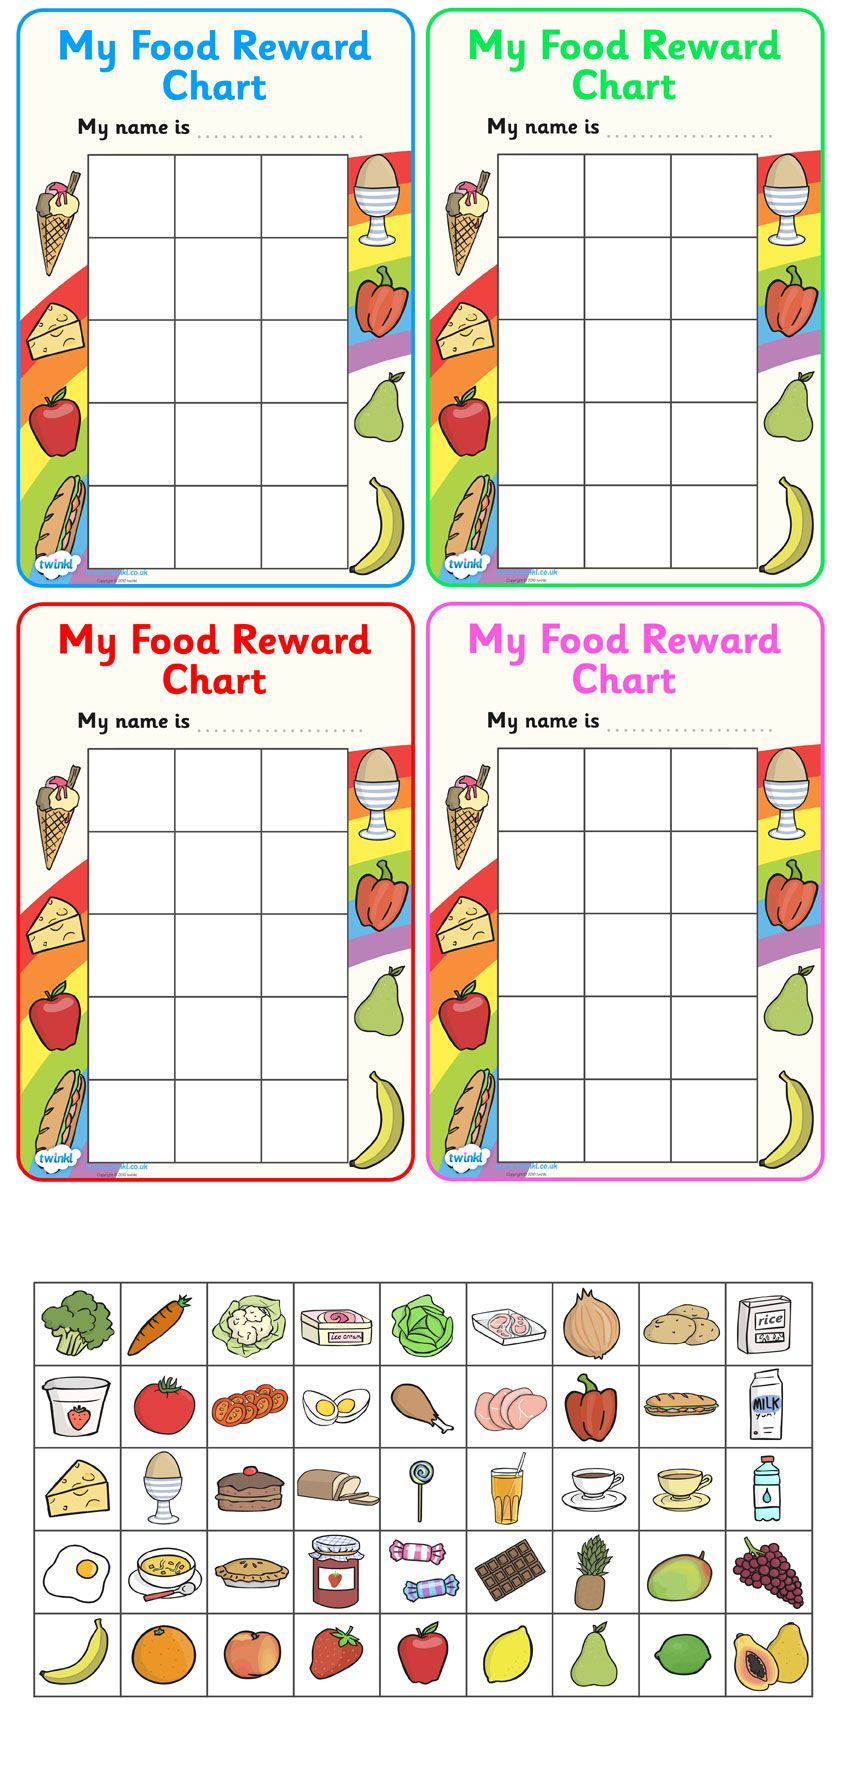 Pin By April Shawhan On Toddler Projects Reward Chart Printable Chart Feeding Therapy